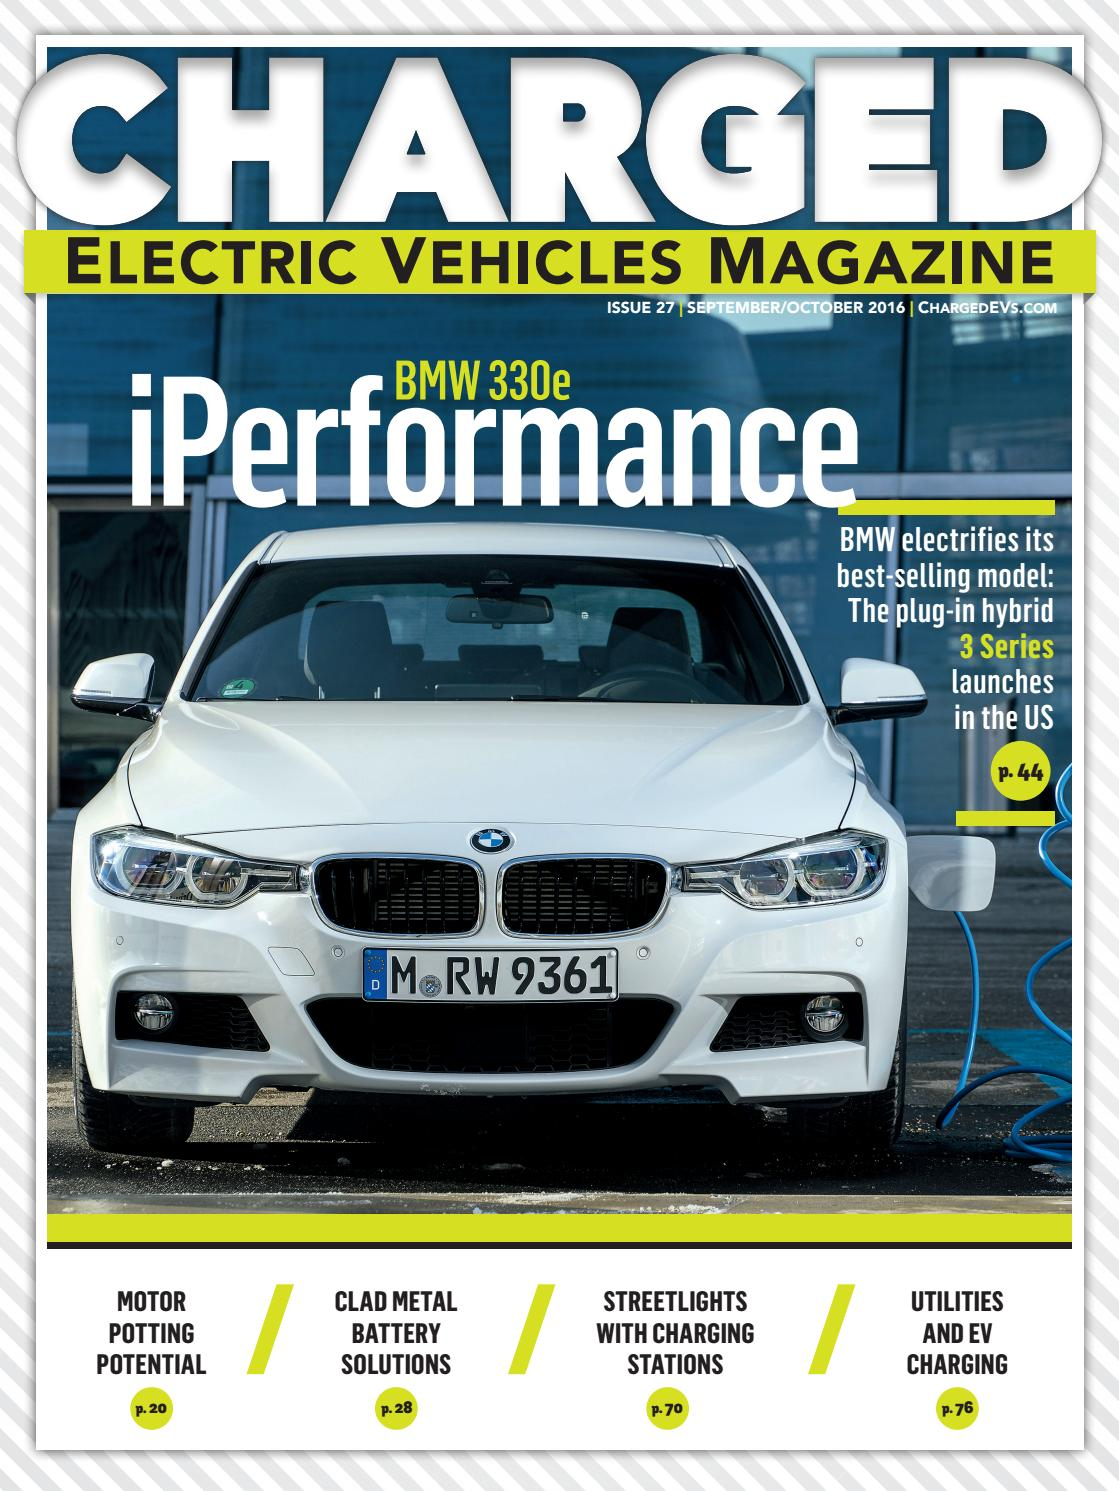 Charged Electric Vehicles Magazine Issue 27 Sep Oct 2016 By Solar Cell Powered Supercapacitor Charger With Strange Output Voltage Vehilces Issuu